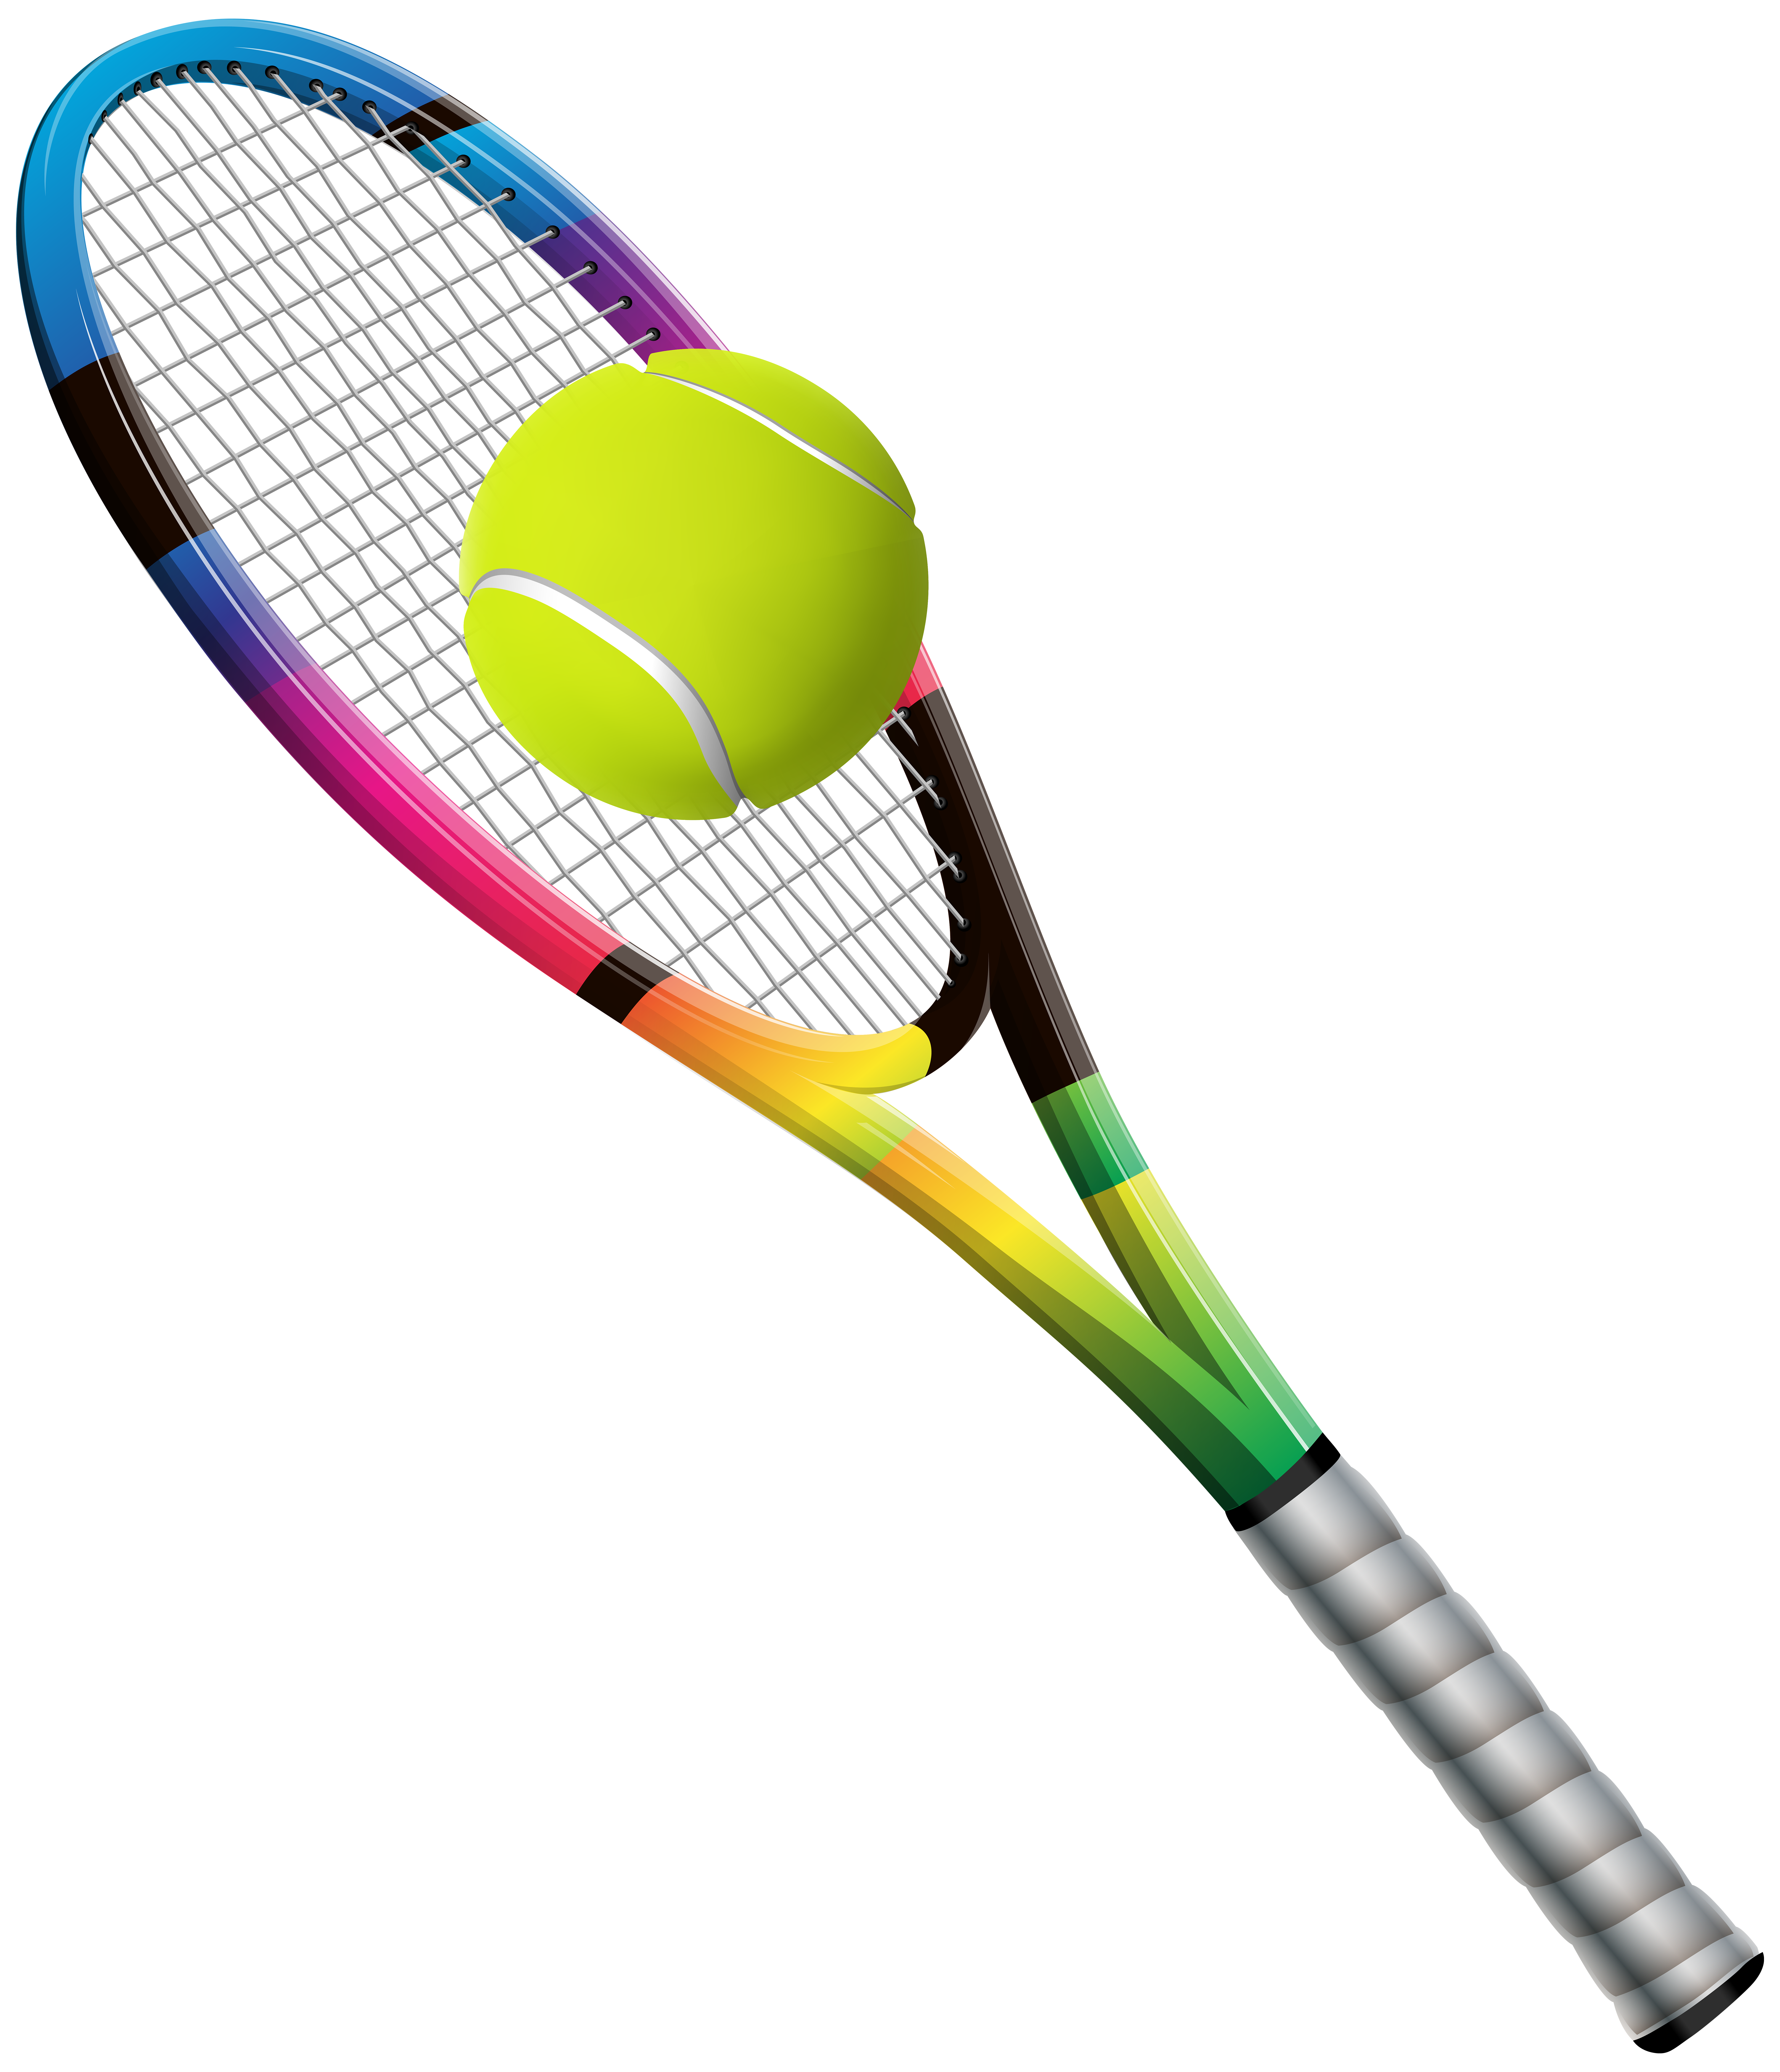 clip art royalty free stock Racket and ball transparent. Tennis rackets clipart.